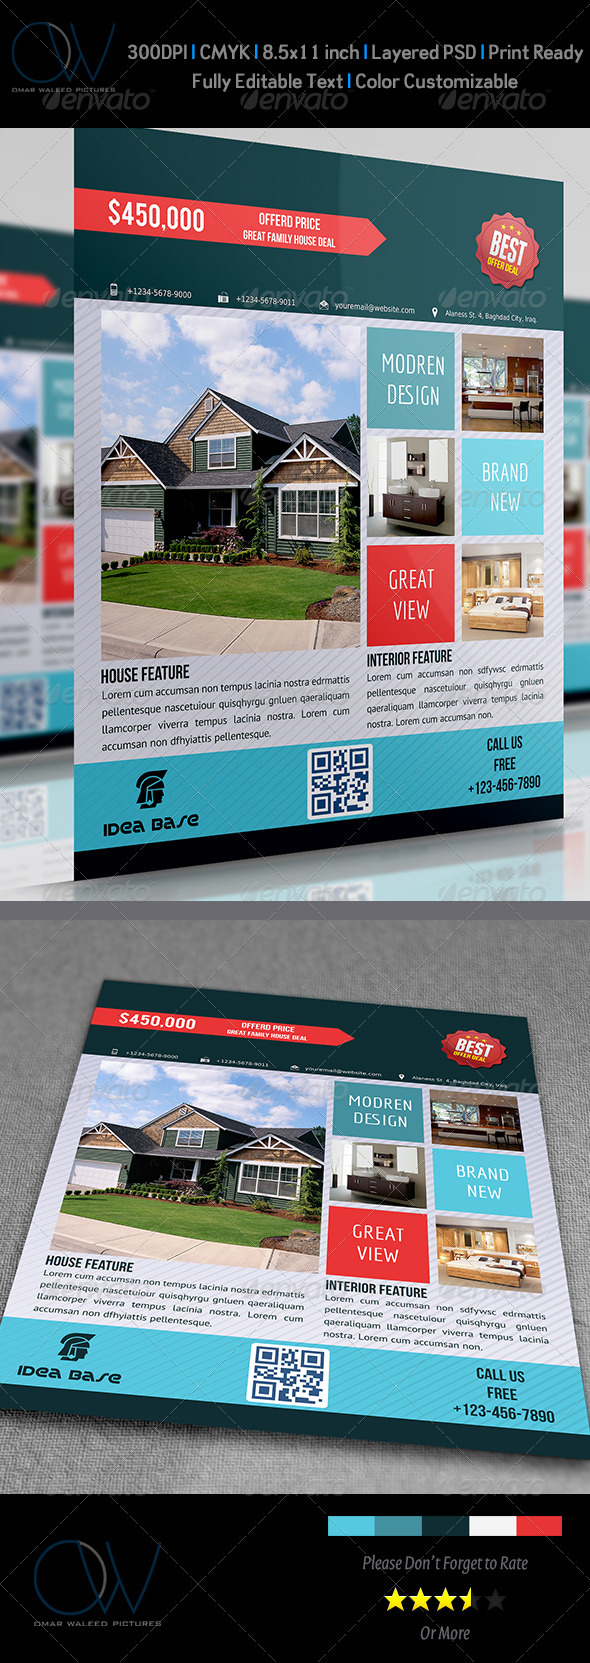 Real Estate Flyer Vol.2 - Commerce Flyers